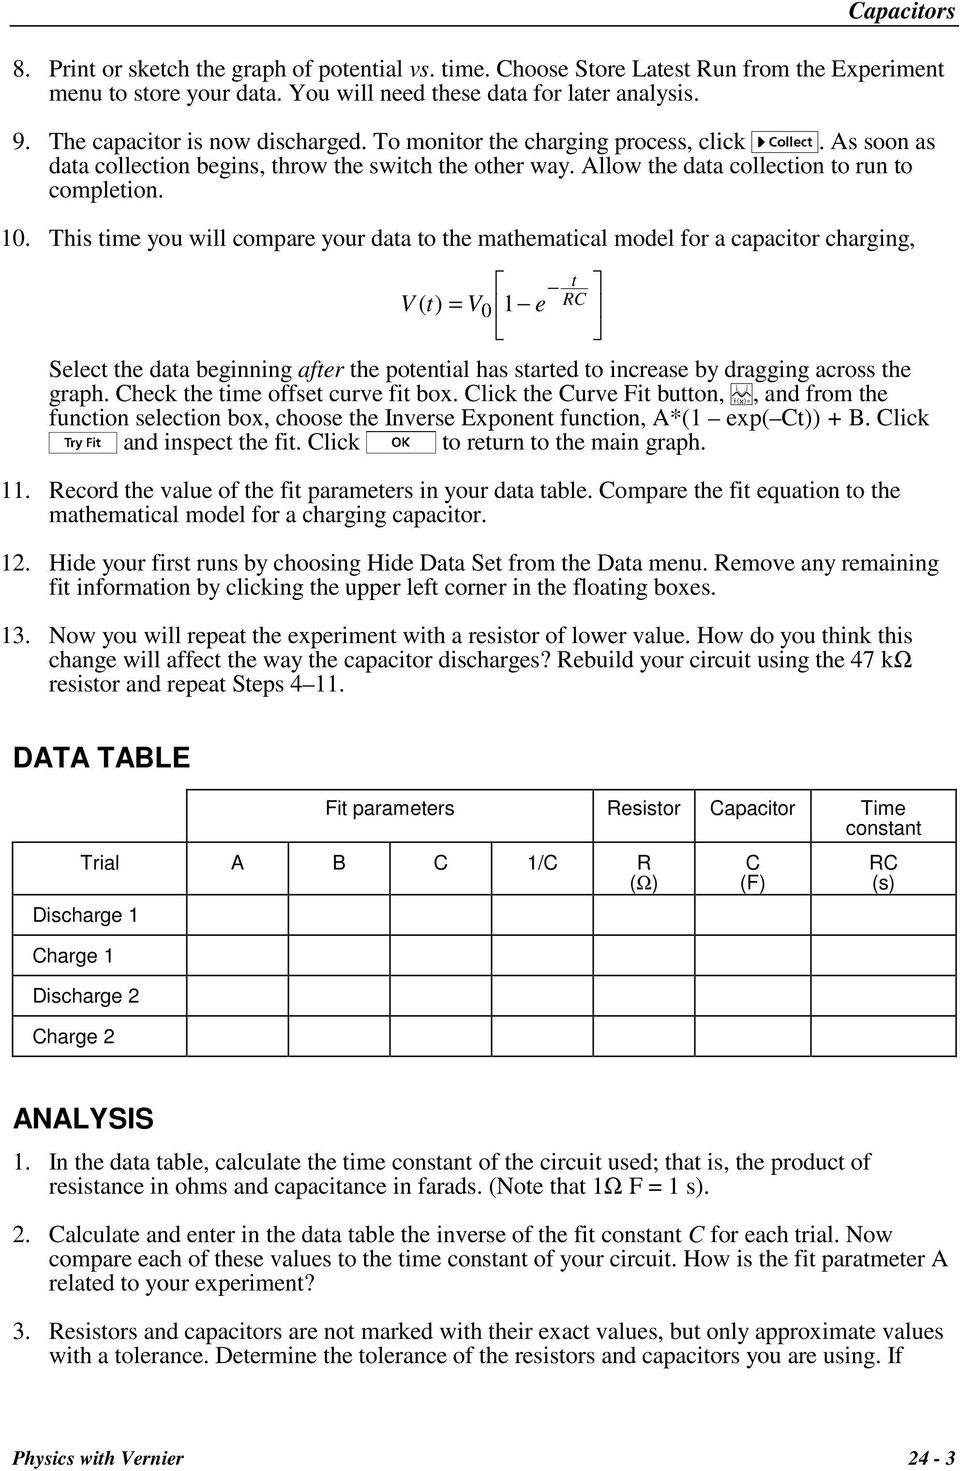 Capacitors Evaluation Copy Pdf An Rc Integrator Is A Circuit That Approximates Themathematical This Time You Will Compare Your Data To The Mathematical Model For Capacitor Charging